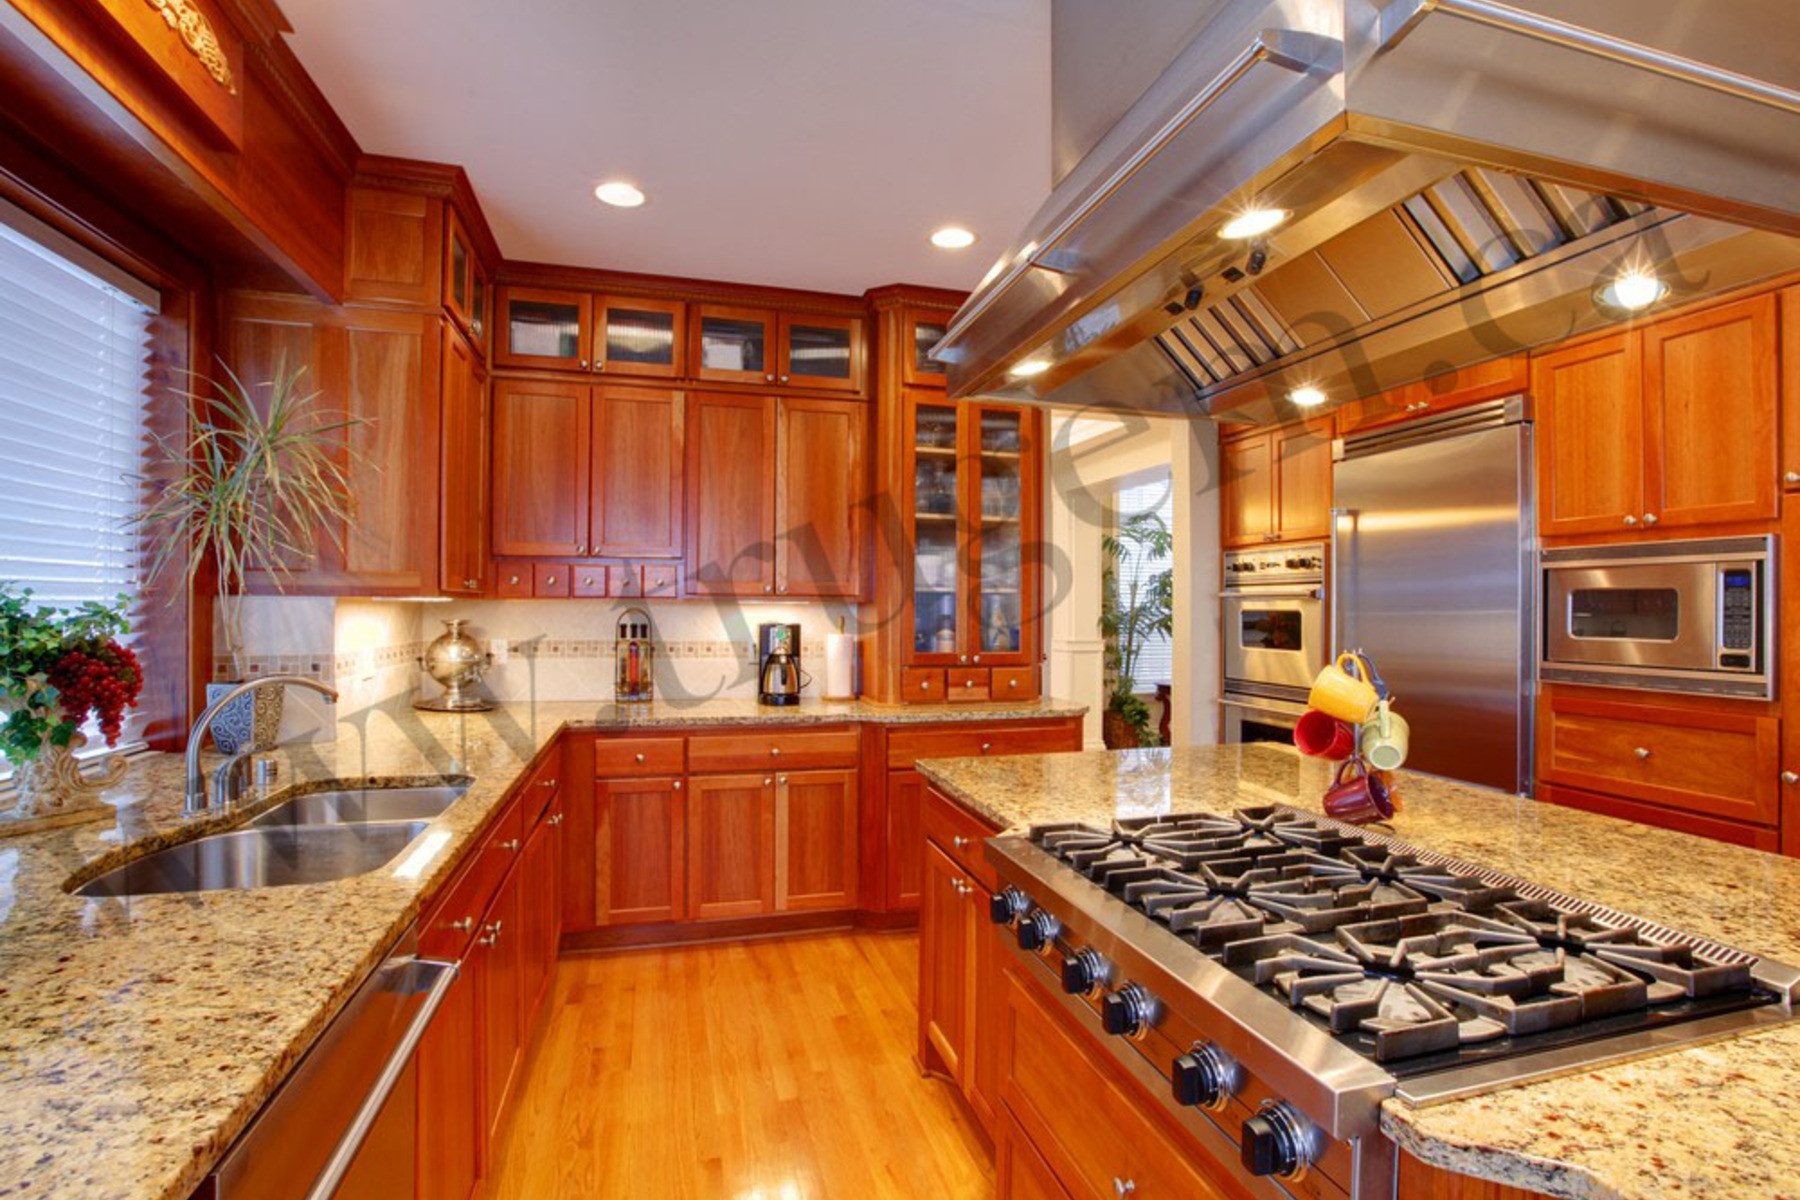 transitional style kitchen cabinets